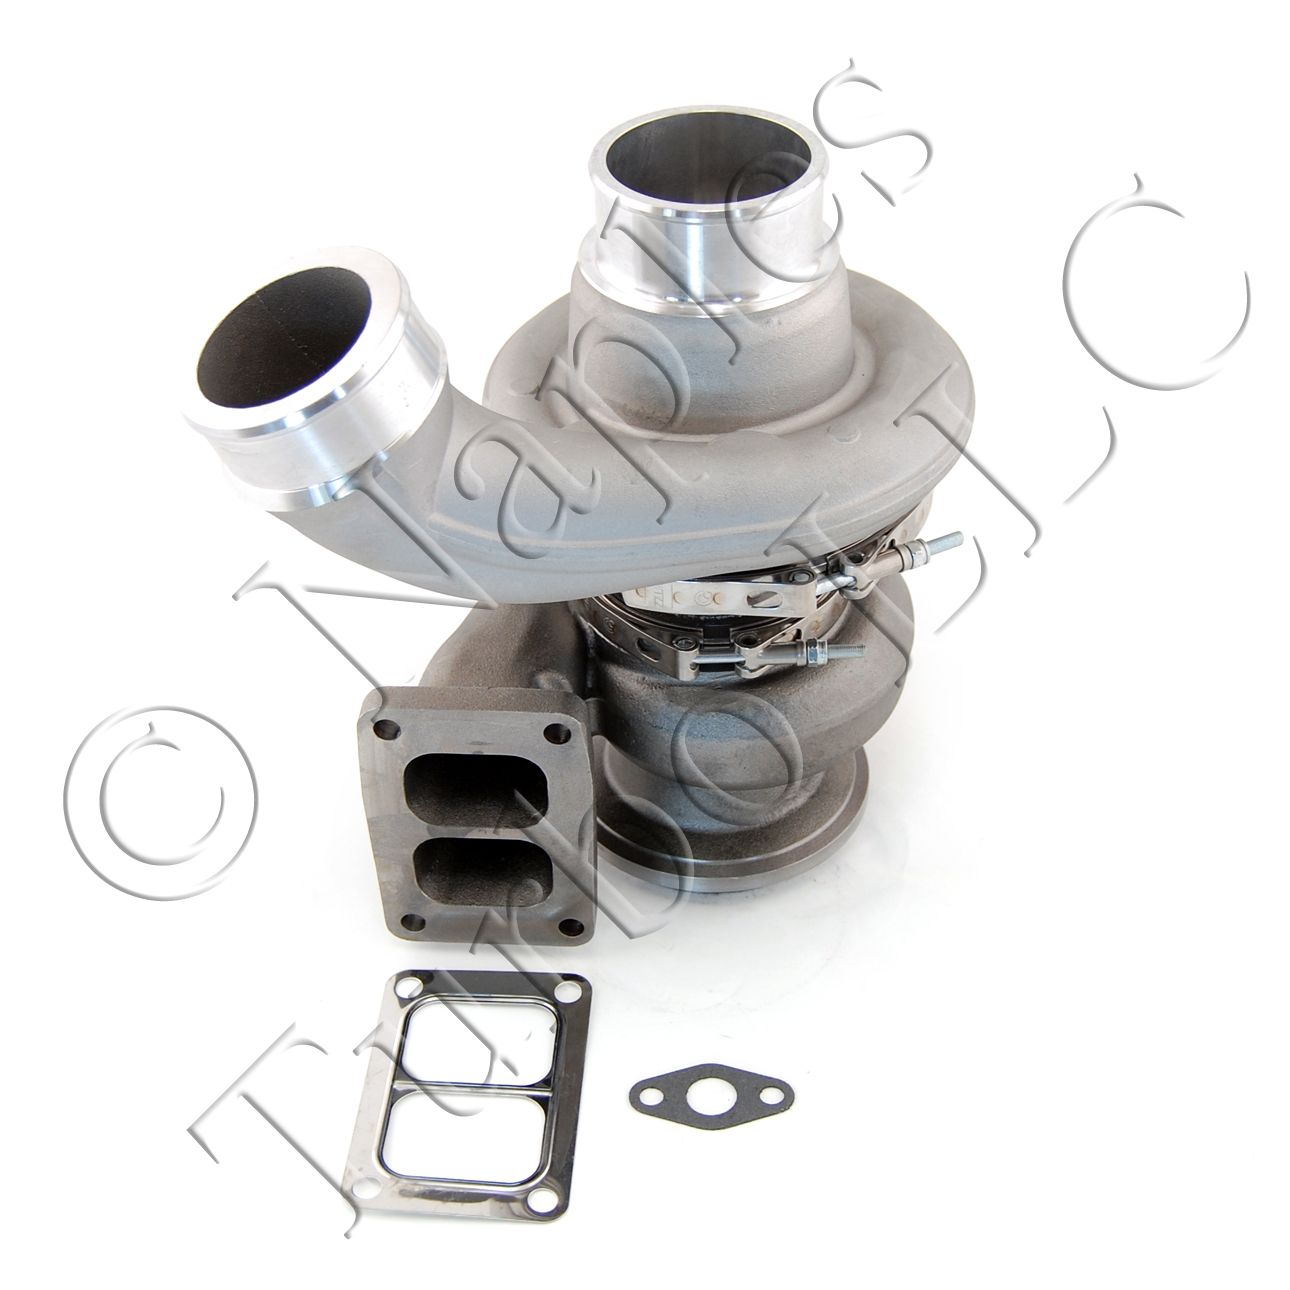 Aftermarket Turbocharger Turbo replaces Schwitzer S400 174832